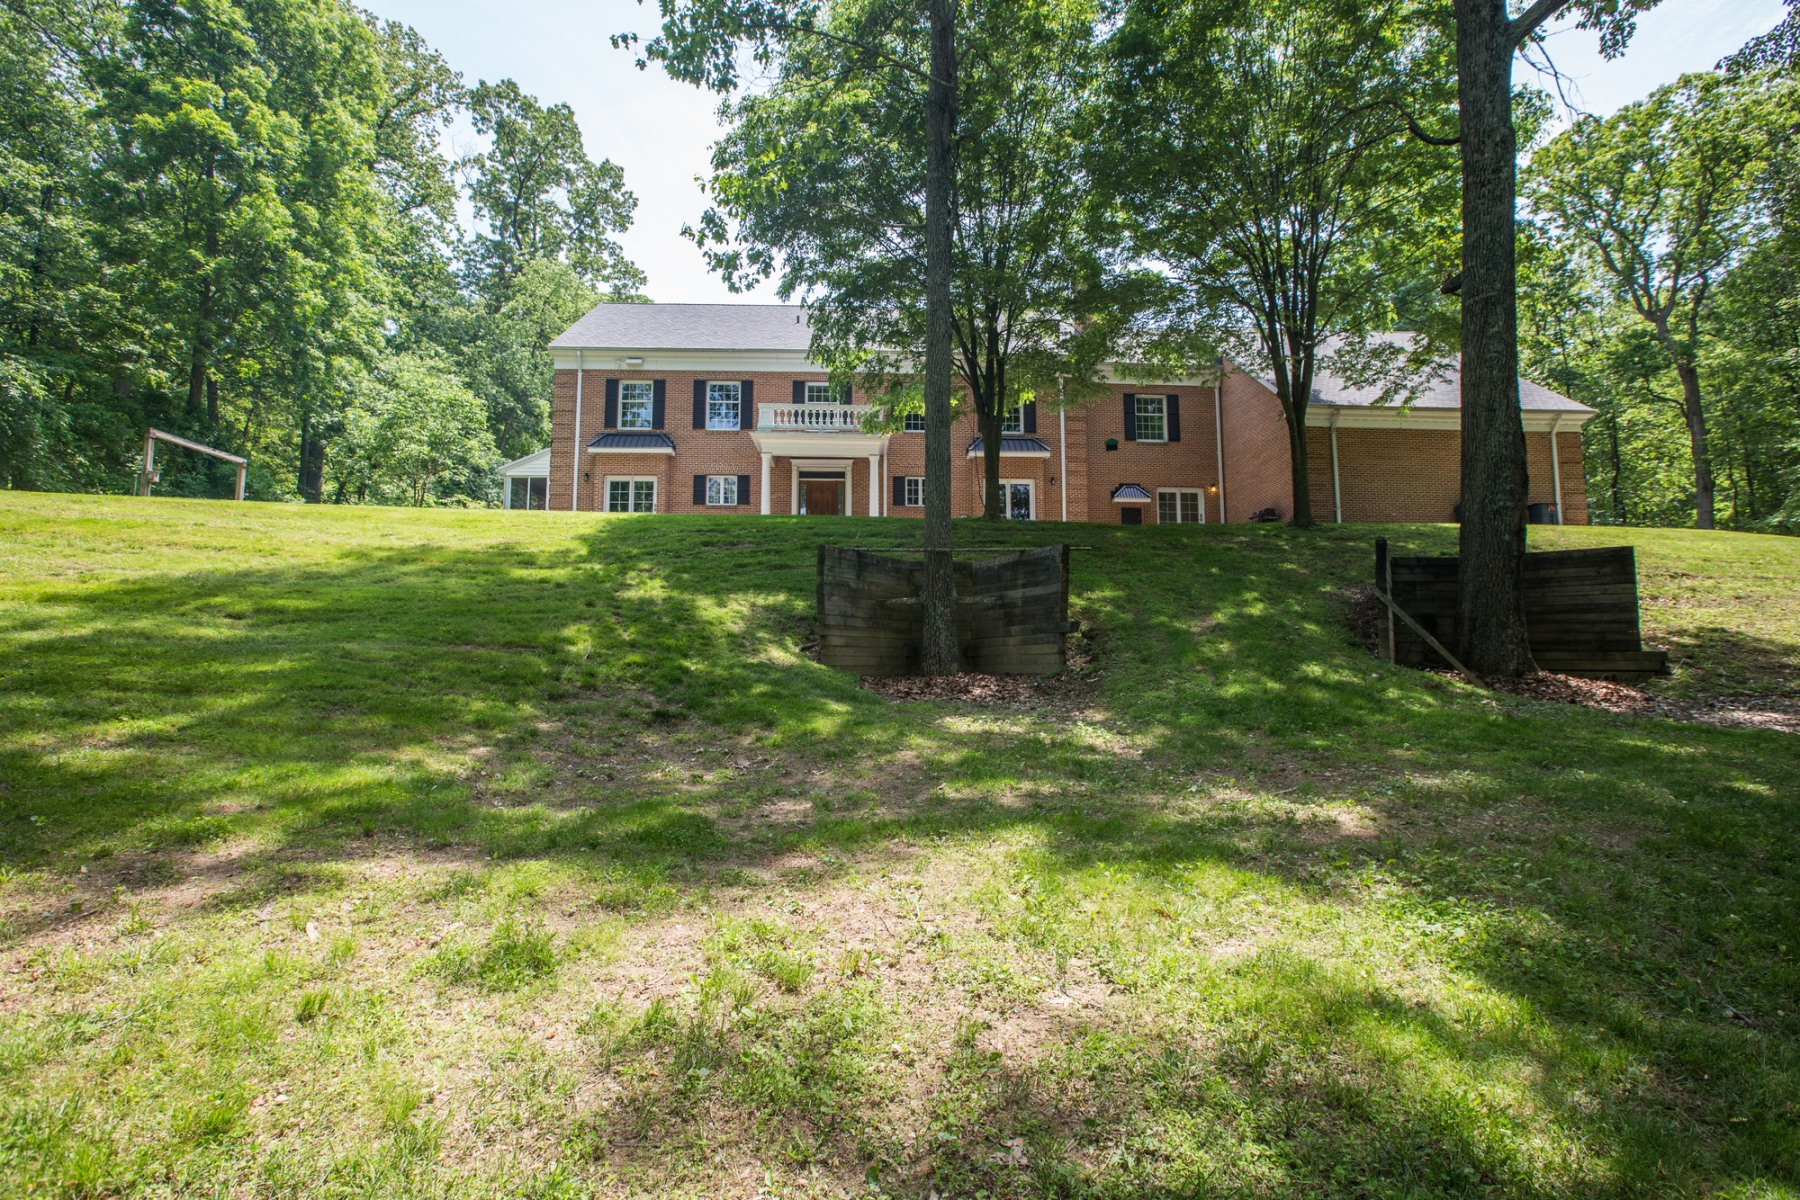 Additional photo for property listing at 13850 Russell Zepp Drive, Clarksville  Clarksville, Maryland 21029 Vereinigte Staaten